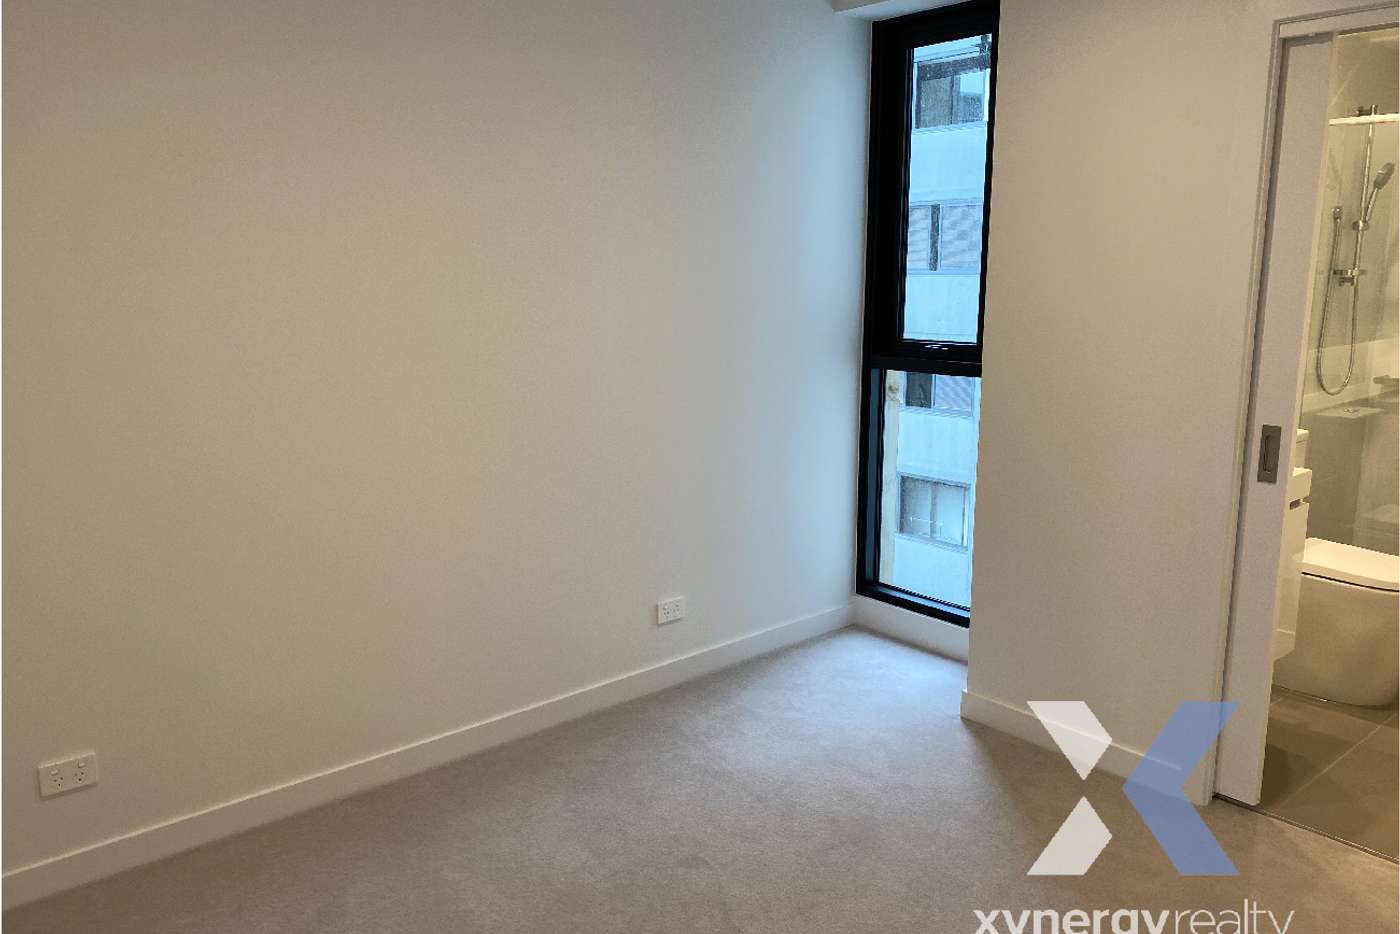 Sixth view of Homely apartment listing, 301/69 Flemington Road, North Melbourne VIC 3051